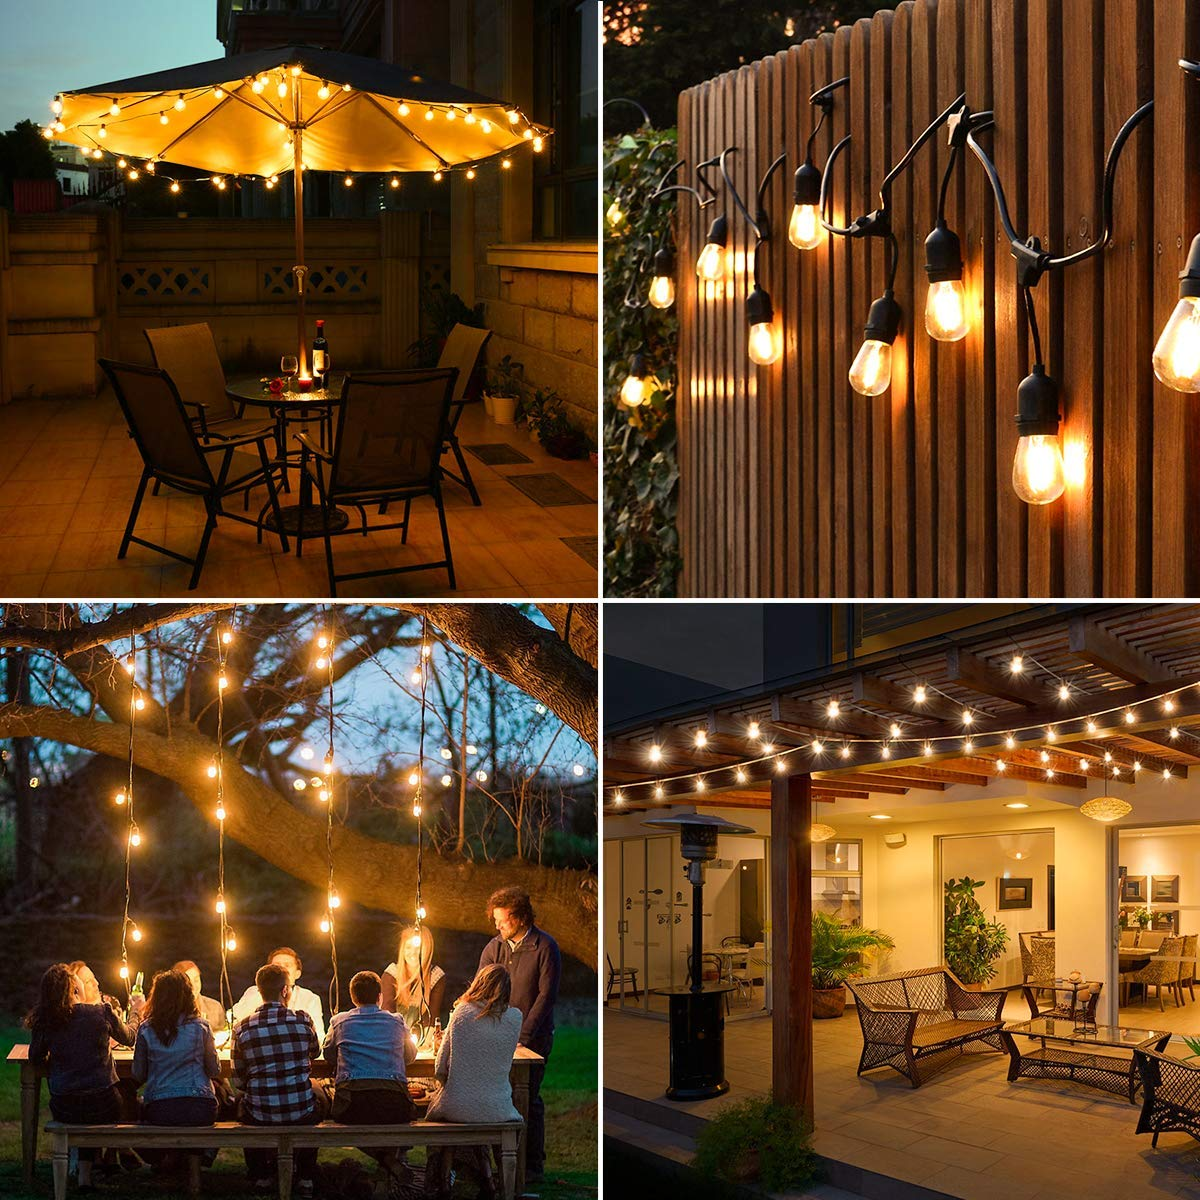 ECOWHO Outdoor String Lights, Waterproof LED Patio String Lights Hanging E26 Sockets UL Listed for Yard Bistro Pergola Wedding Gathering Party Garden (52ft Outdoor Patio Lights)